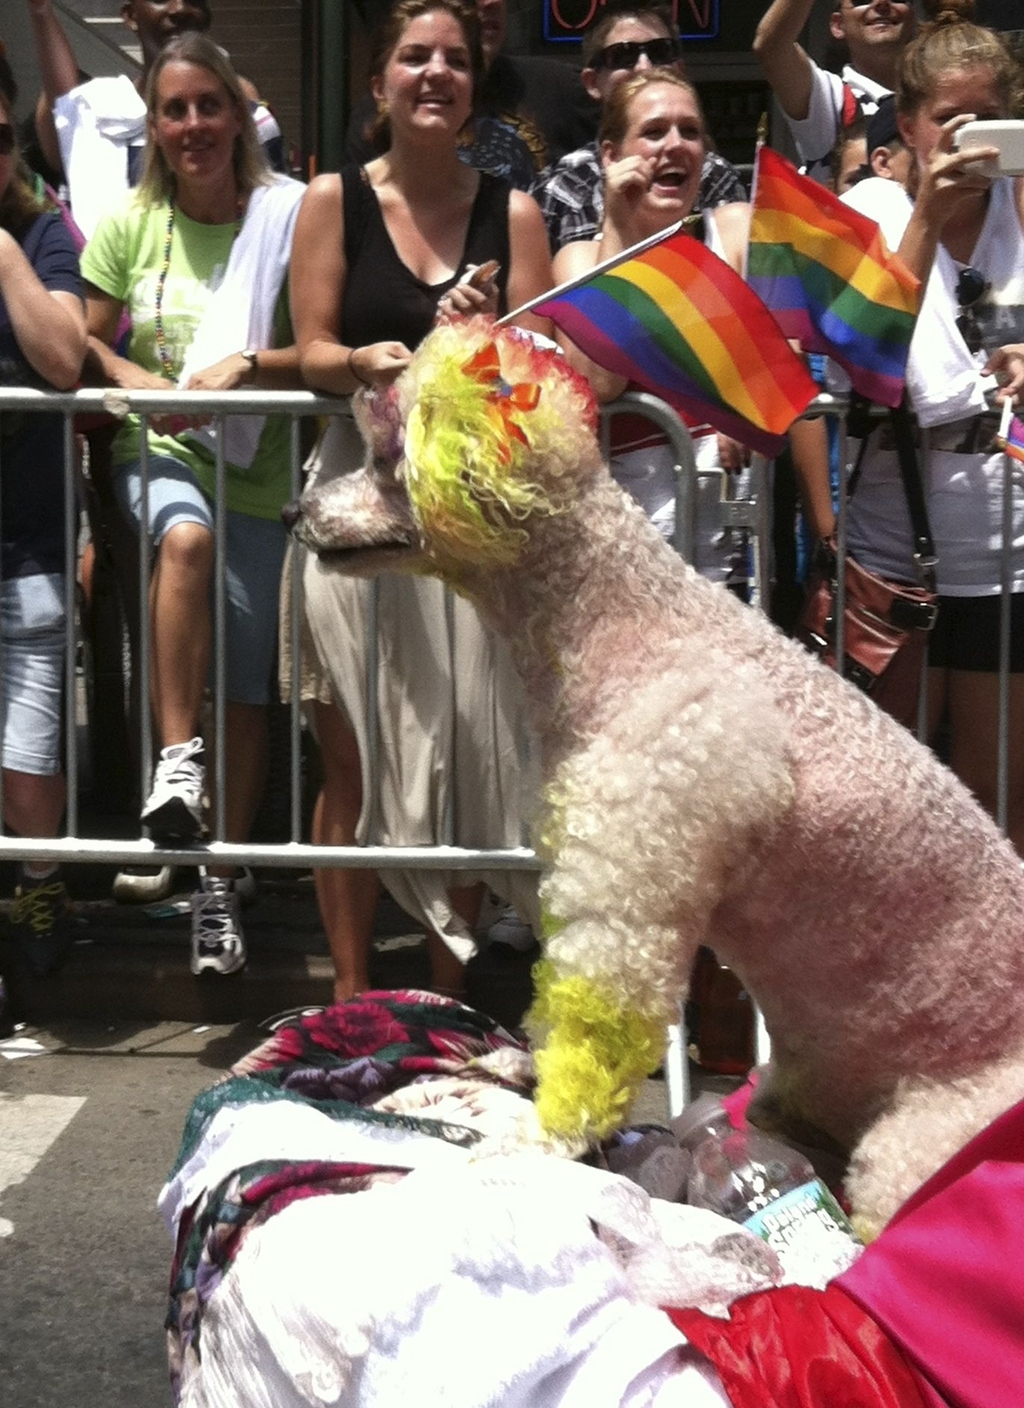 33 Moments From The N.Y.C. Gay Pride Parade That Made Me Smile